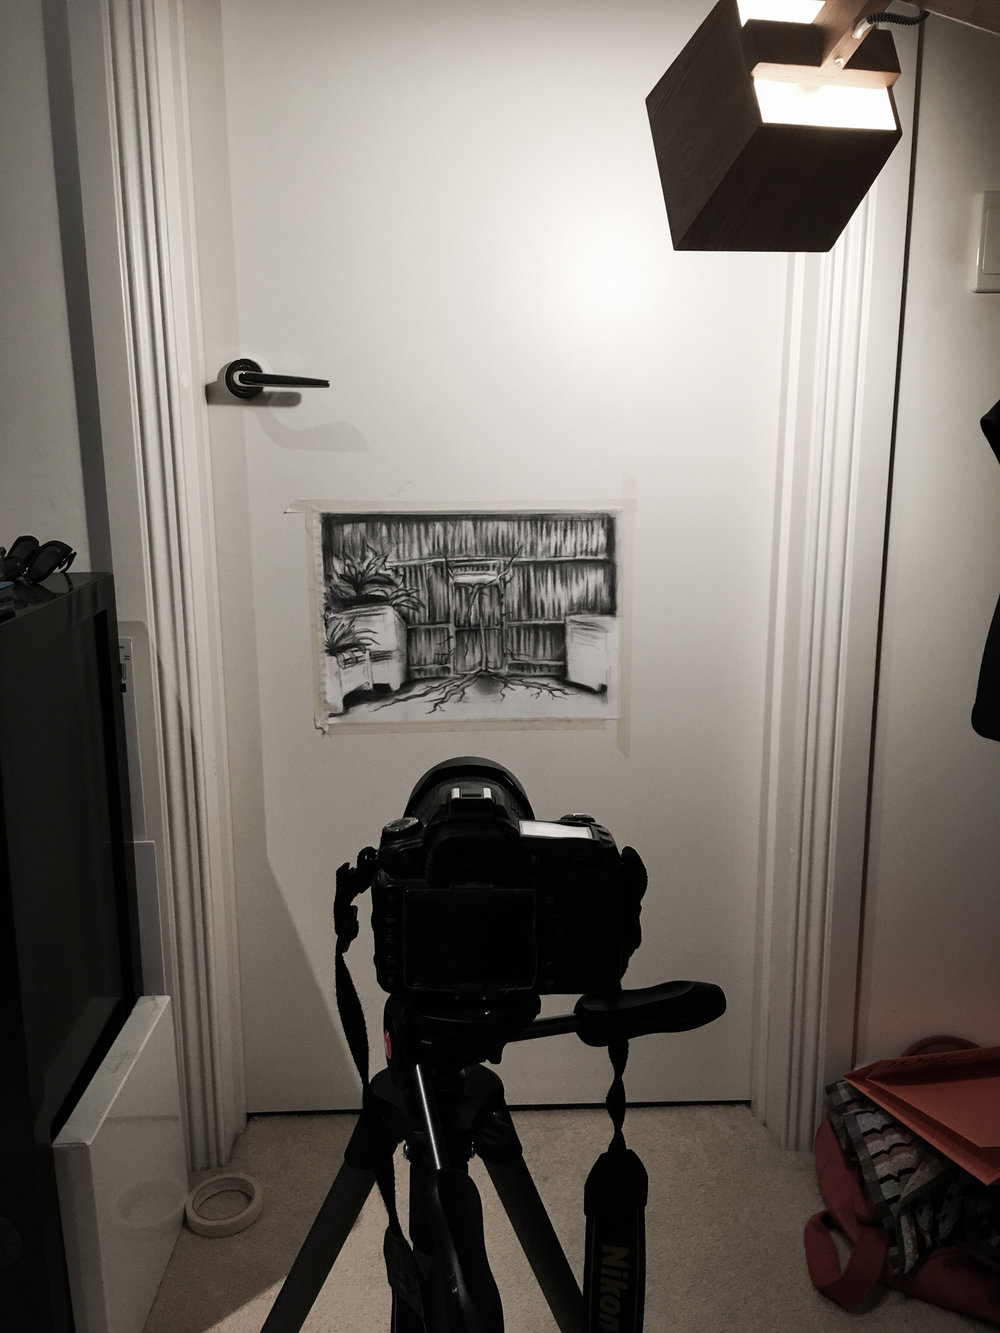 Camera and sketch set up